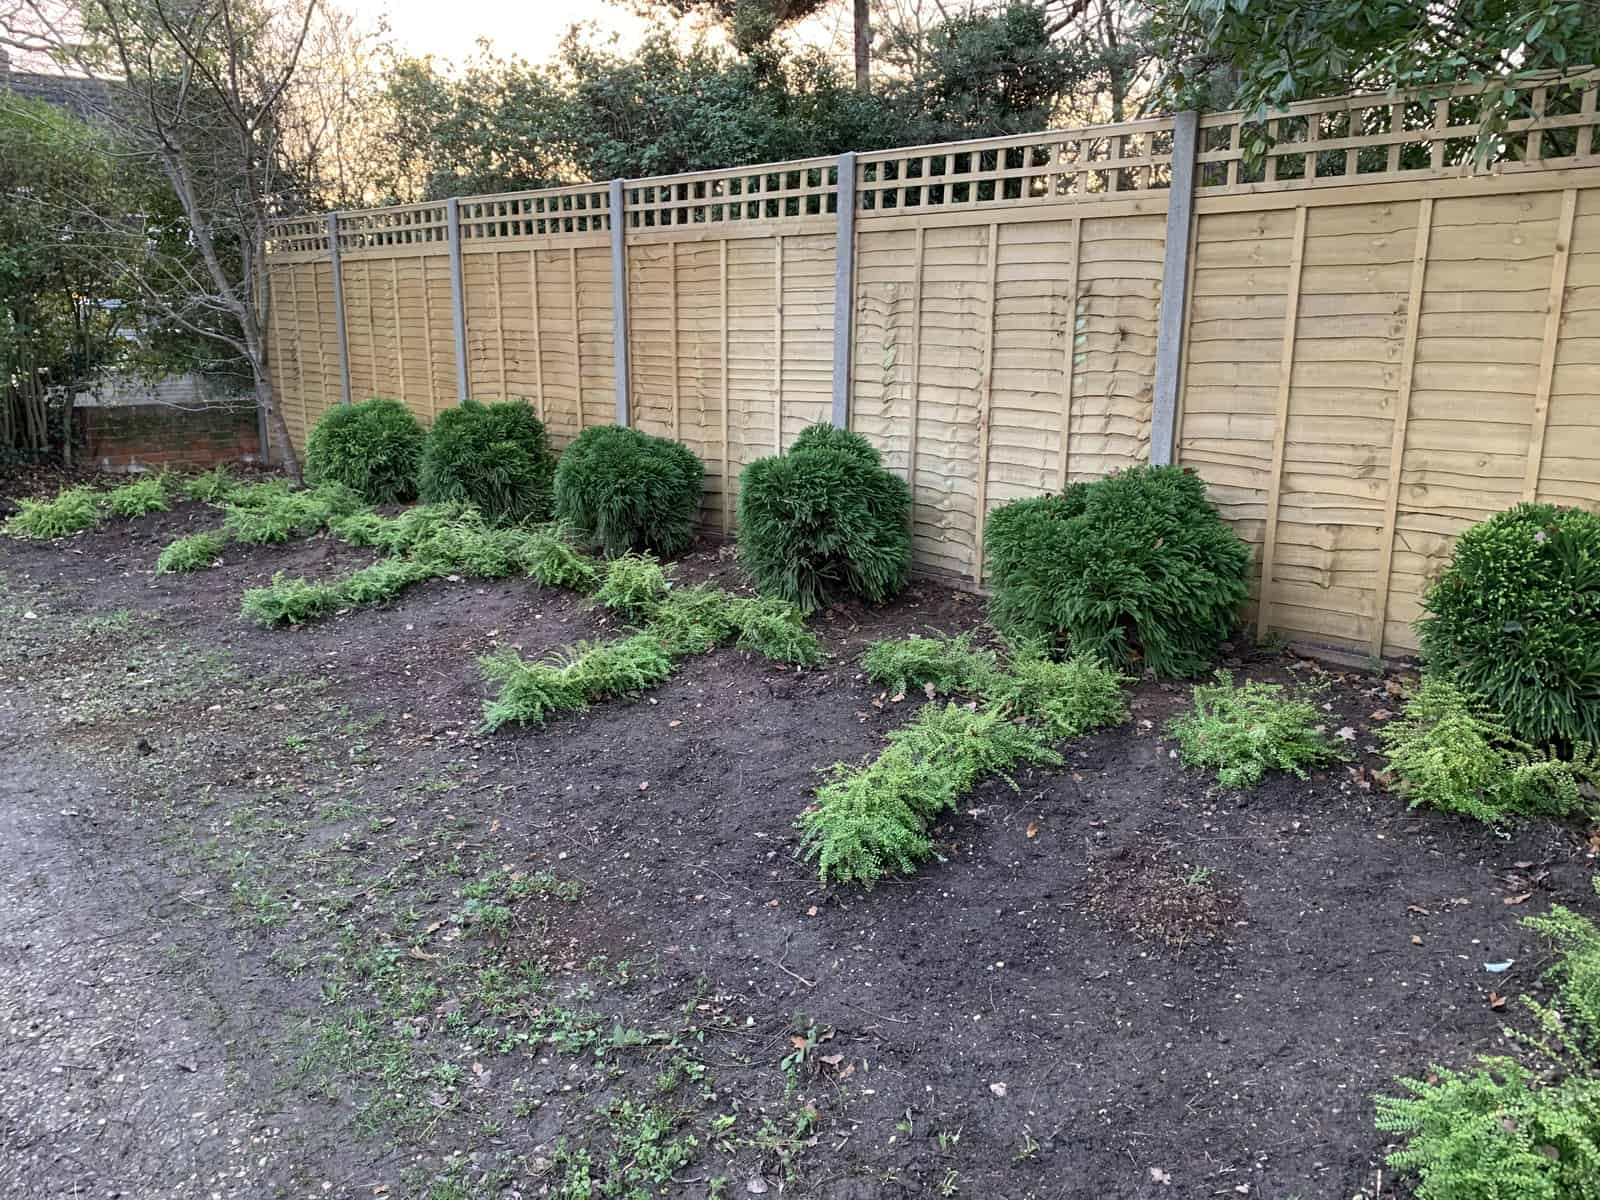 Planting in Shinfield, Reading.